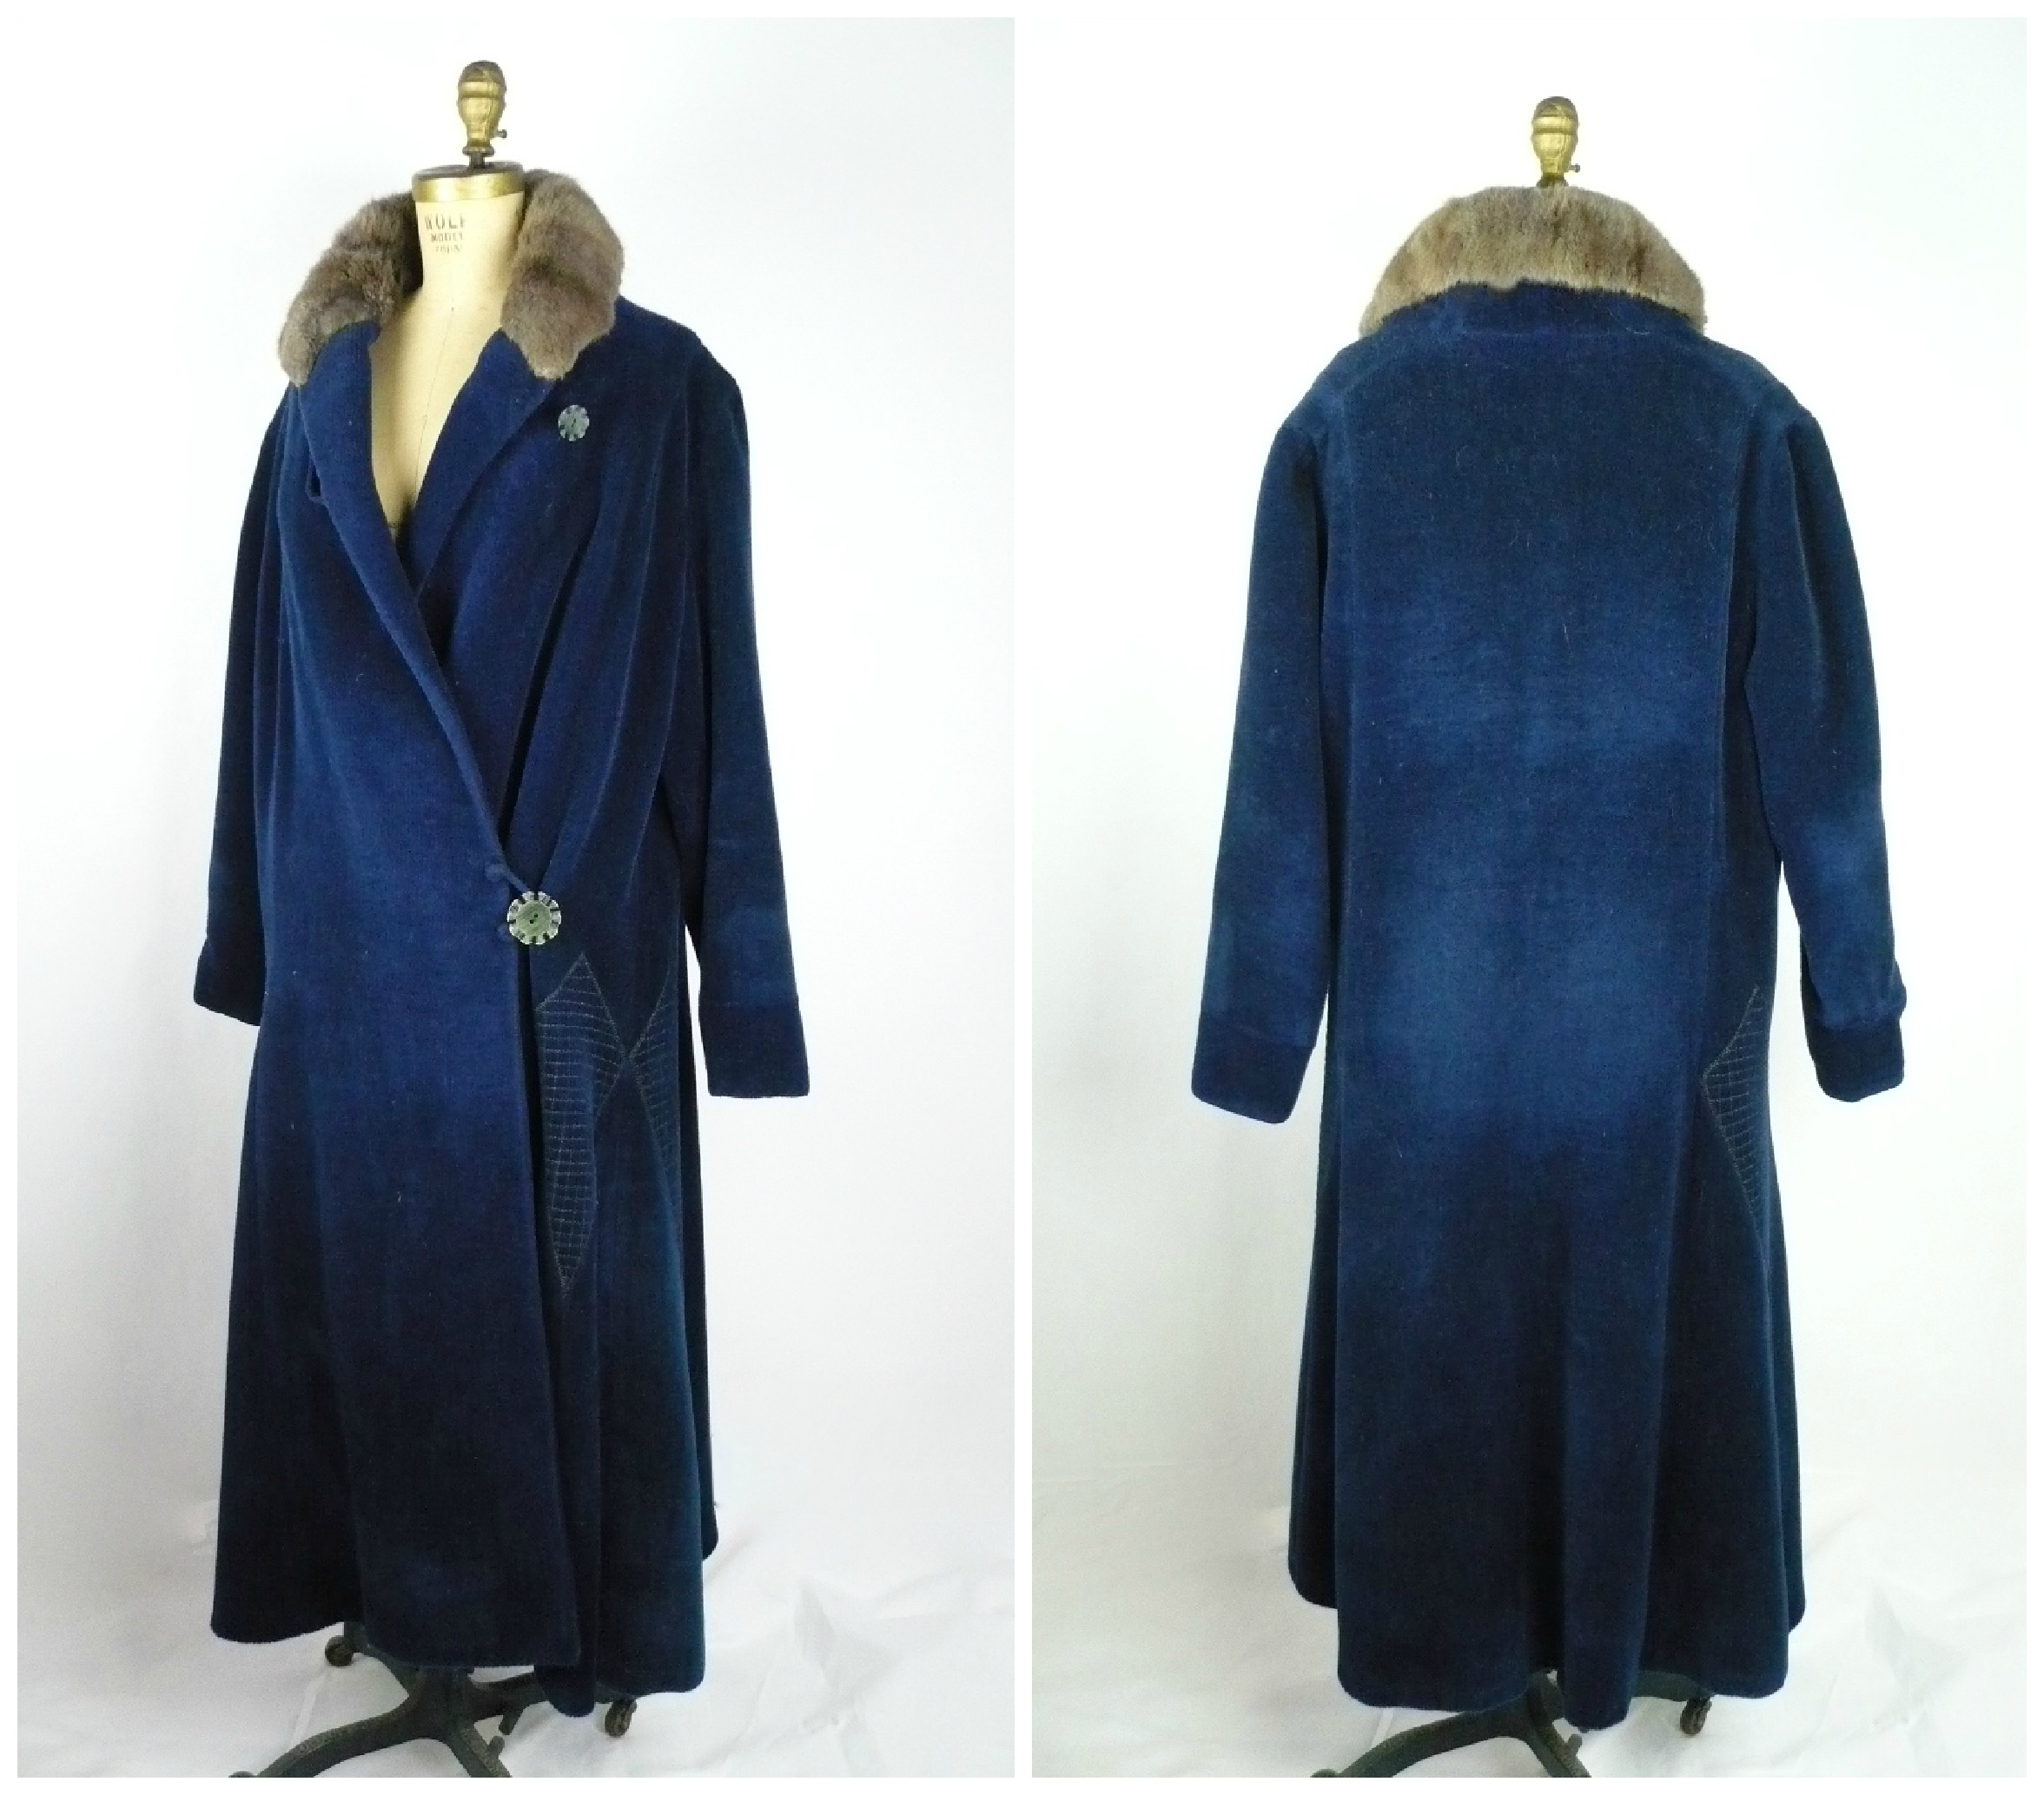 Ian Drummond Collection 20s Coats 1